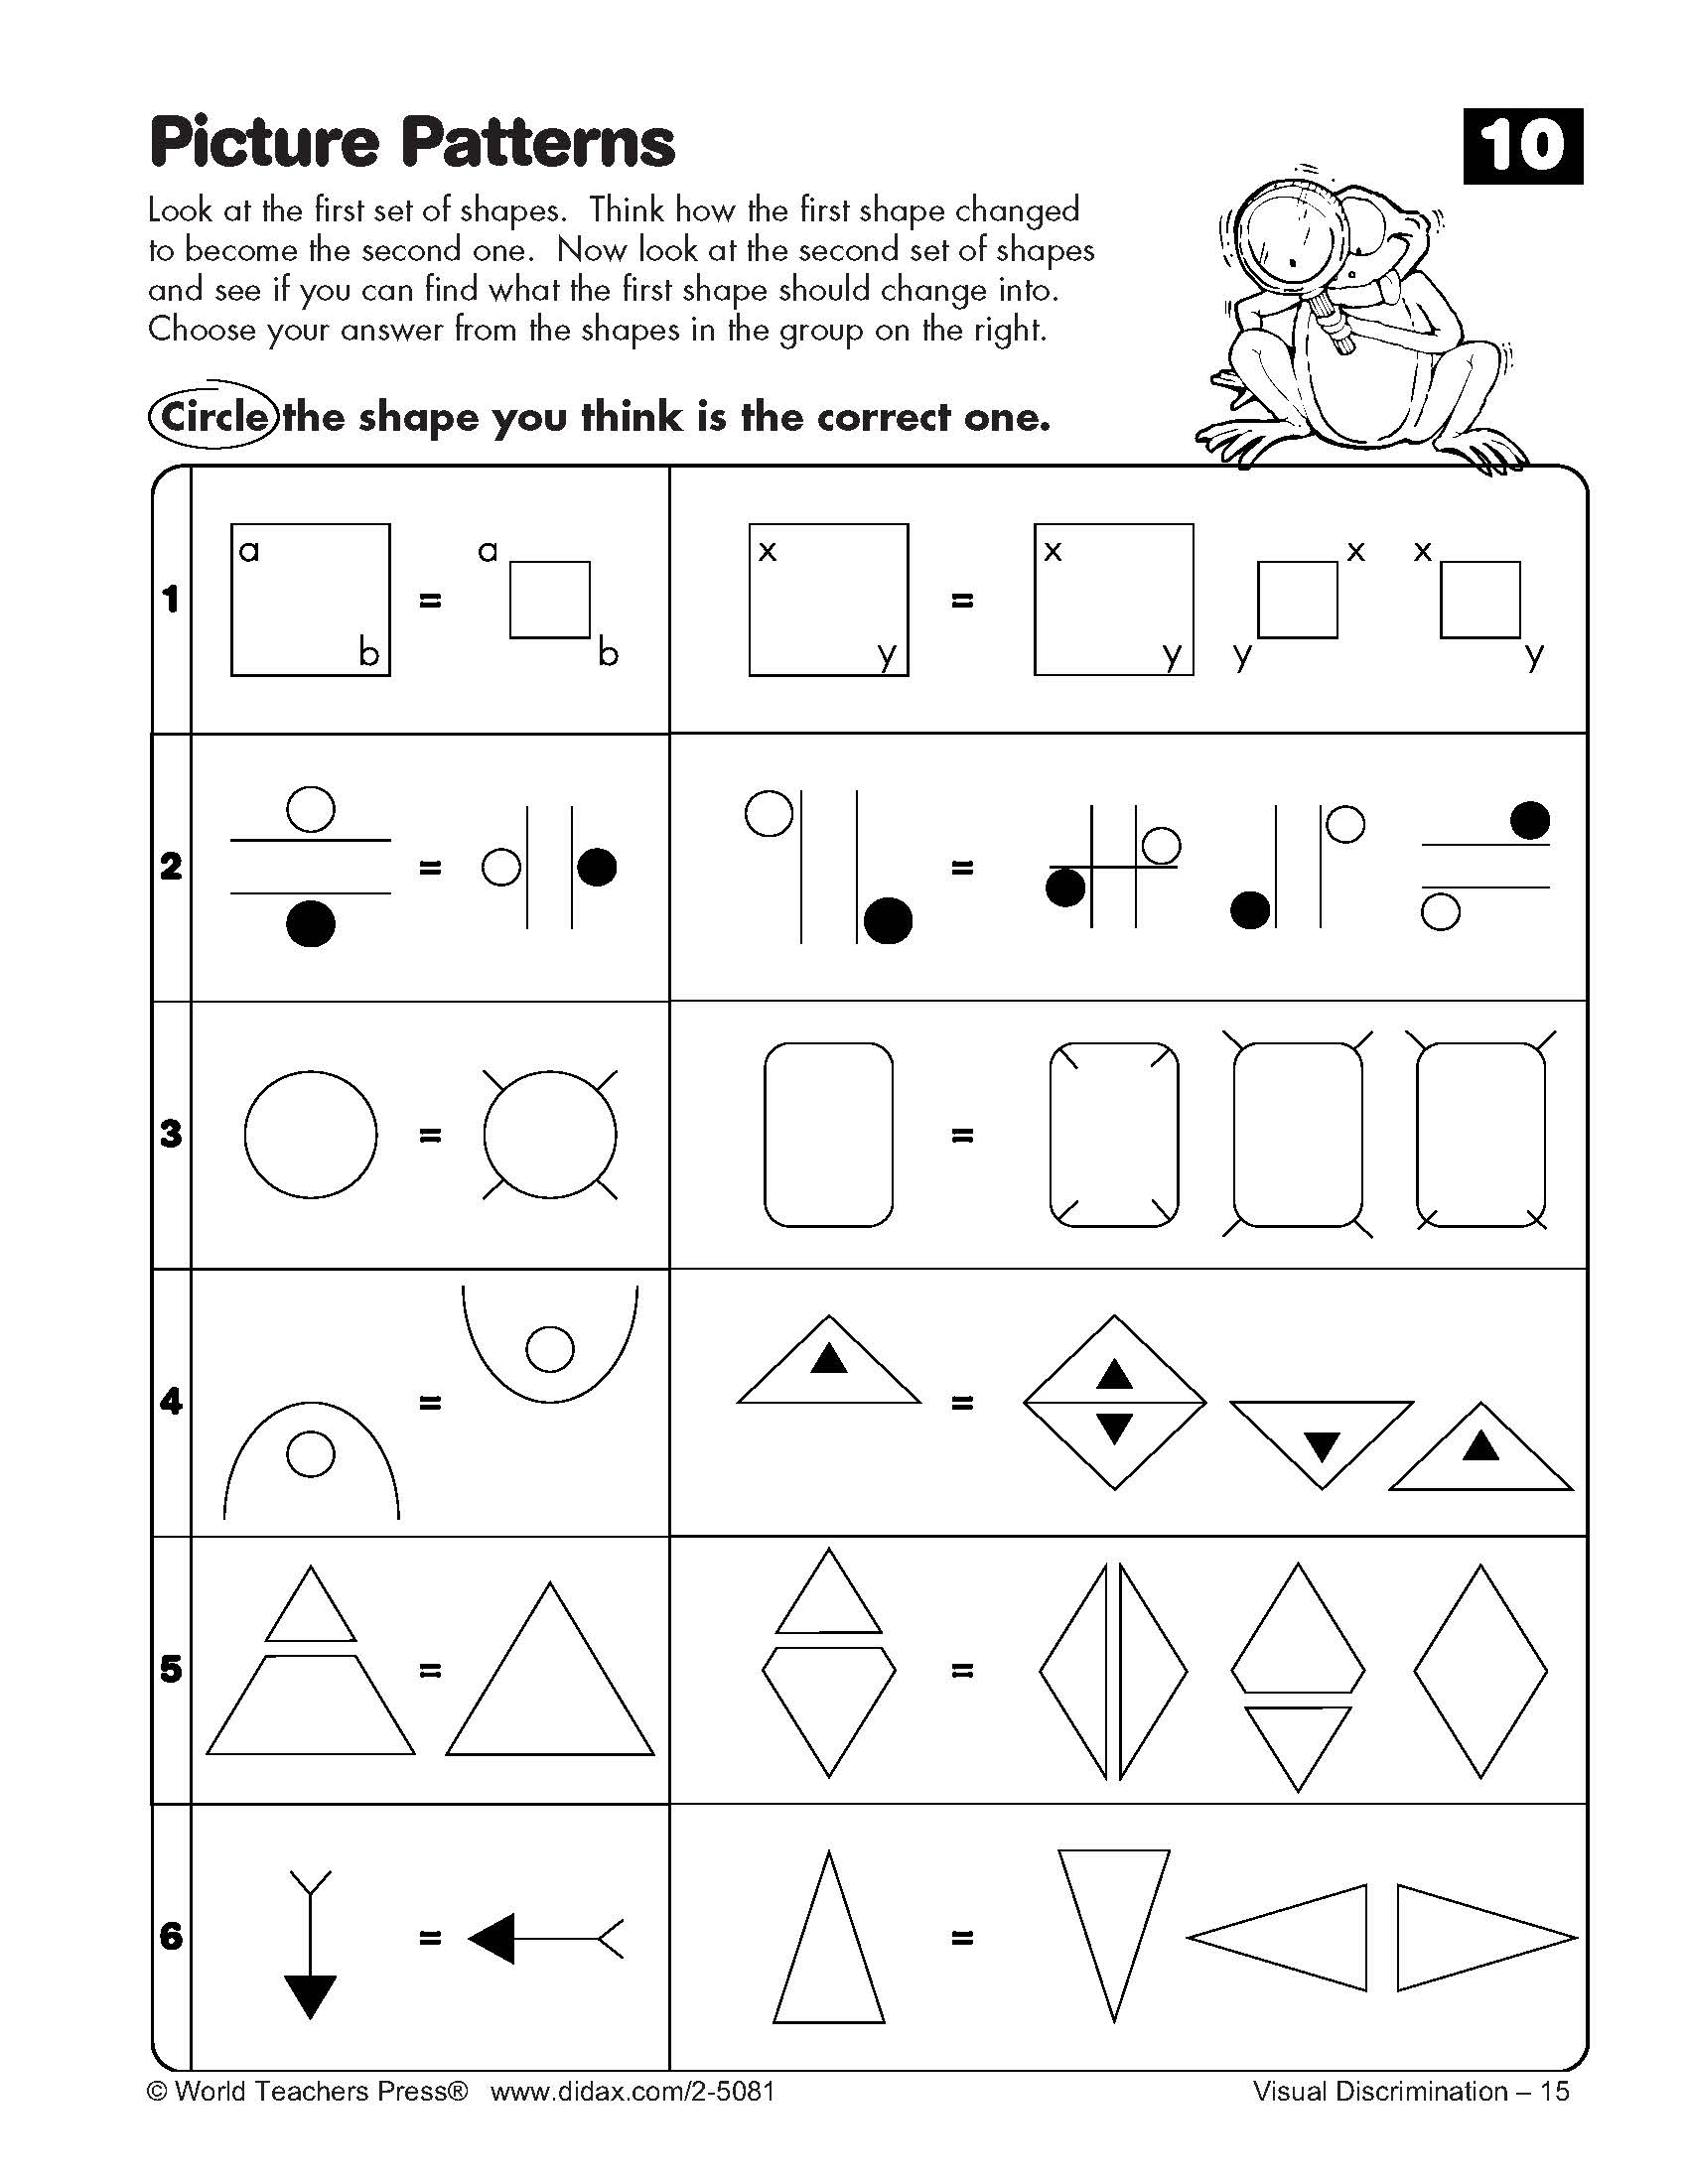 Worksheets Visual Discrimination Worksheets visual discrimination exploring and solving picture patterns p10